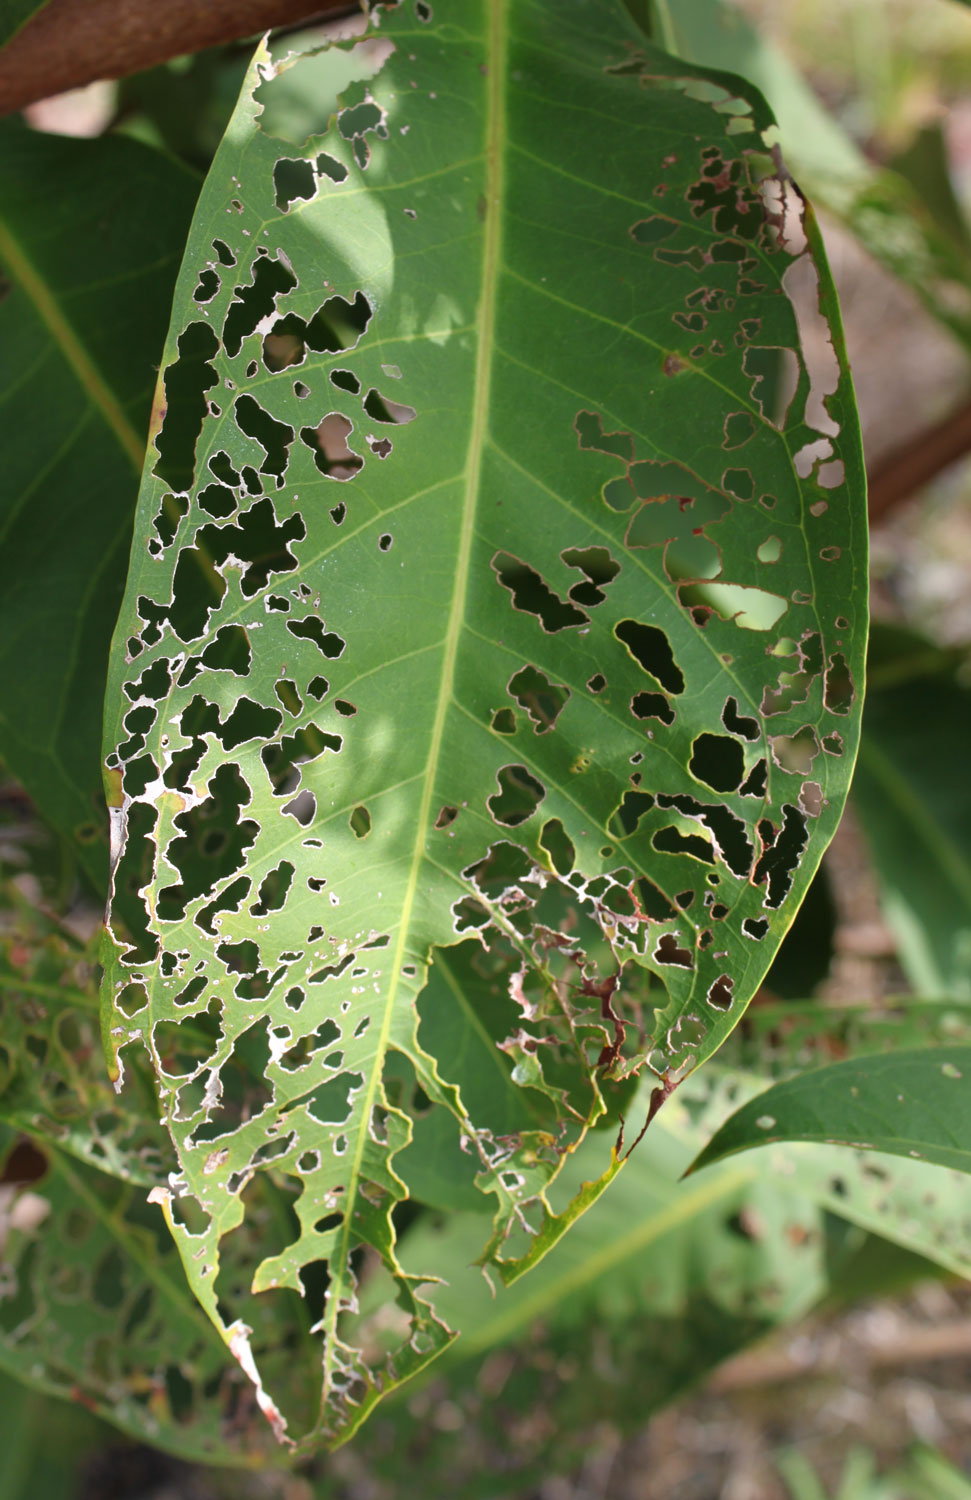 characteristic <em>Adoretus sinicus</em> damage on a leaf; photo by E.L. Engasser